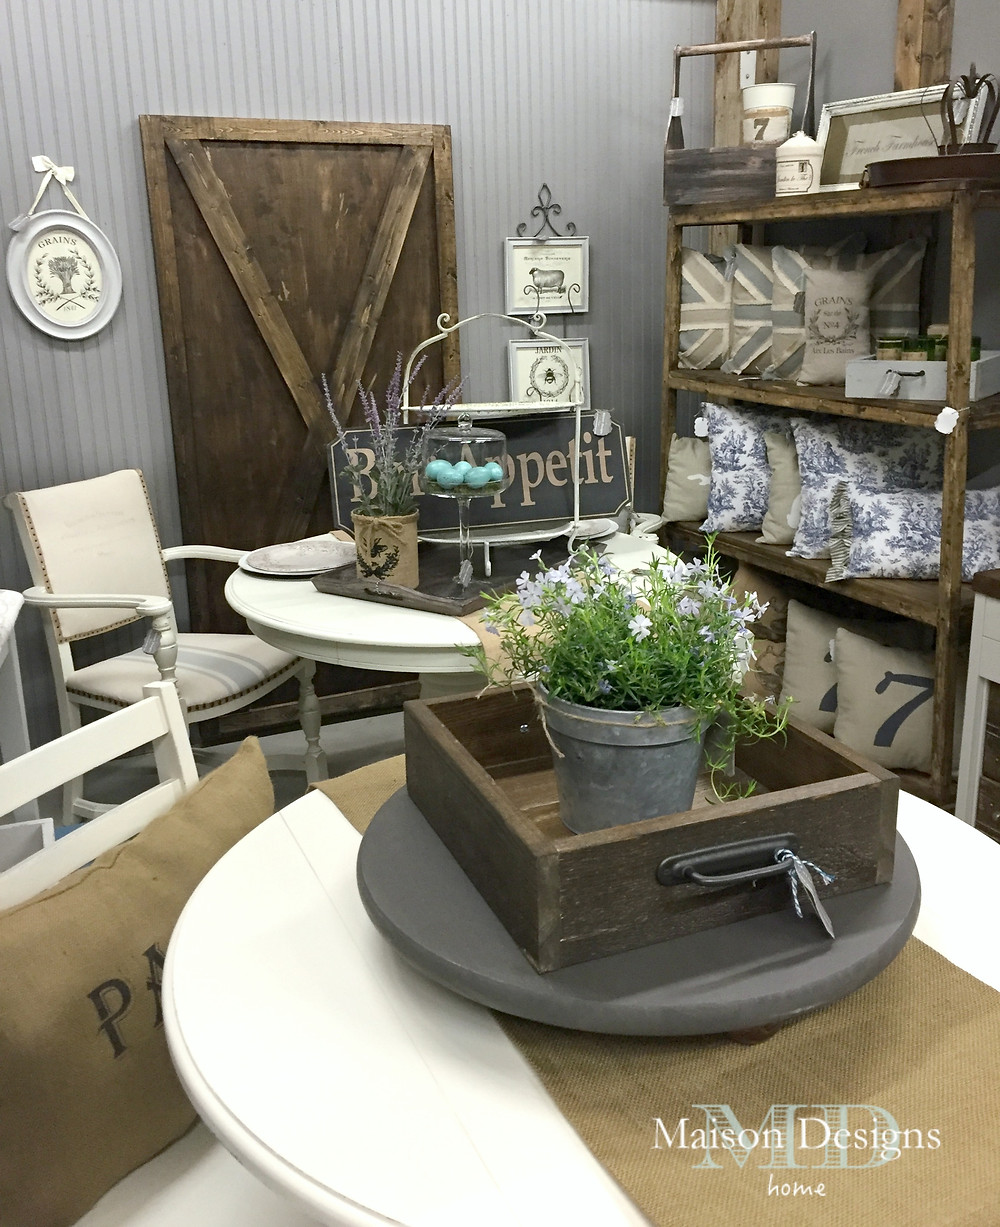 Spring Event ~ Maison Designs Home